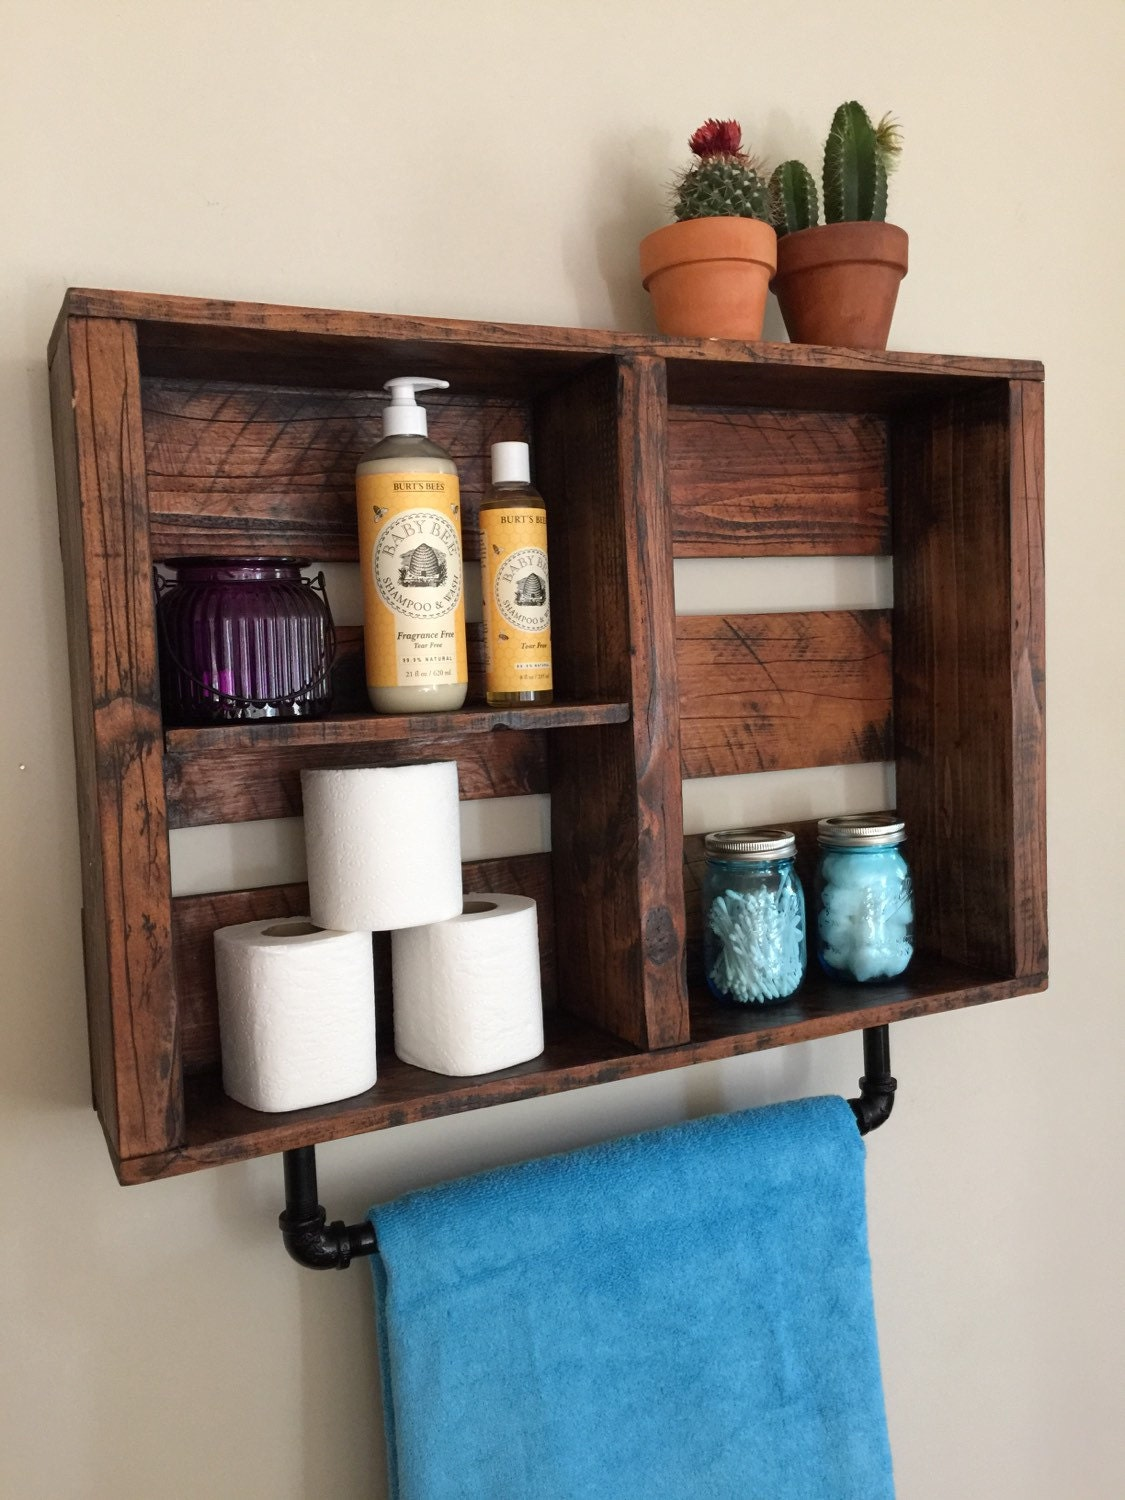 Innovative Bathroom Shelves Floating Shelves Industrial Shelves Bathroom Decor